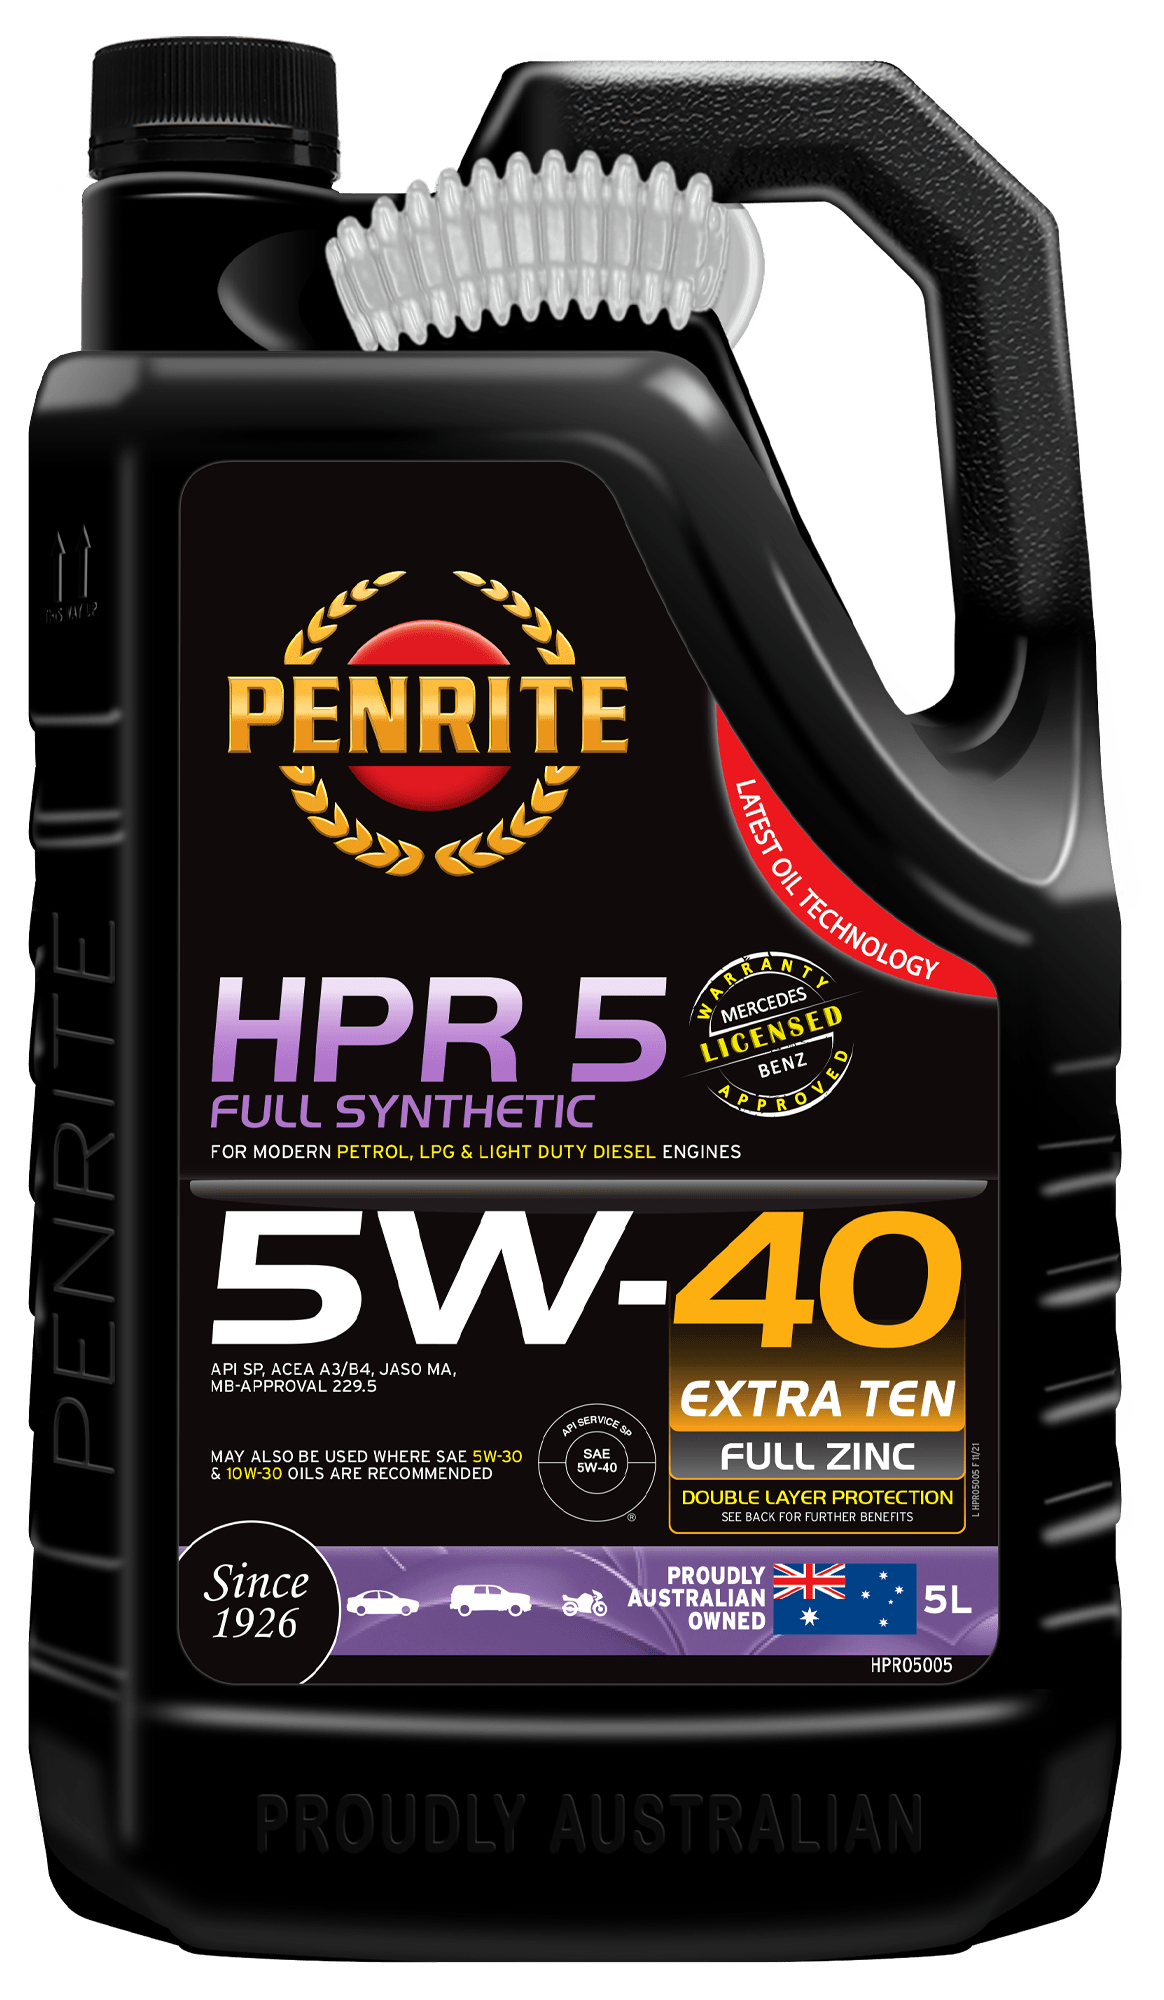 5 W 40 Hpr 5 5w 40 Full Synthetic Penrite Oil